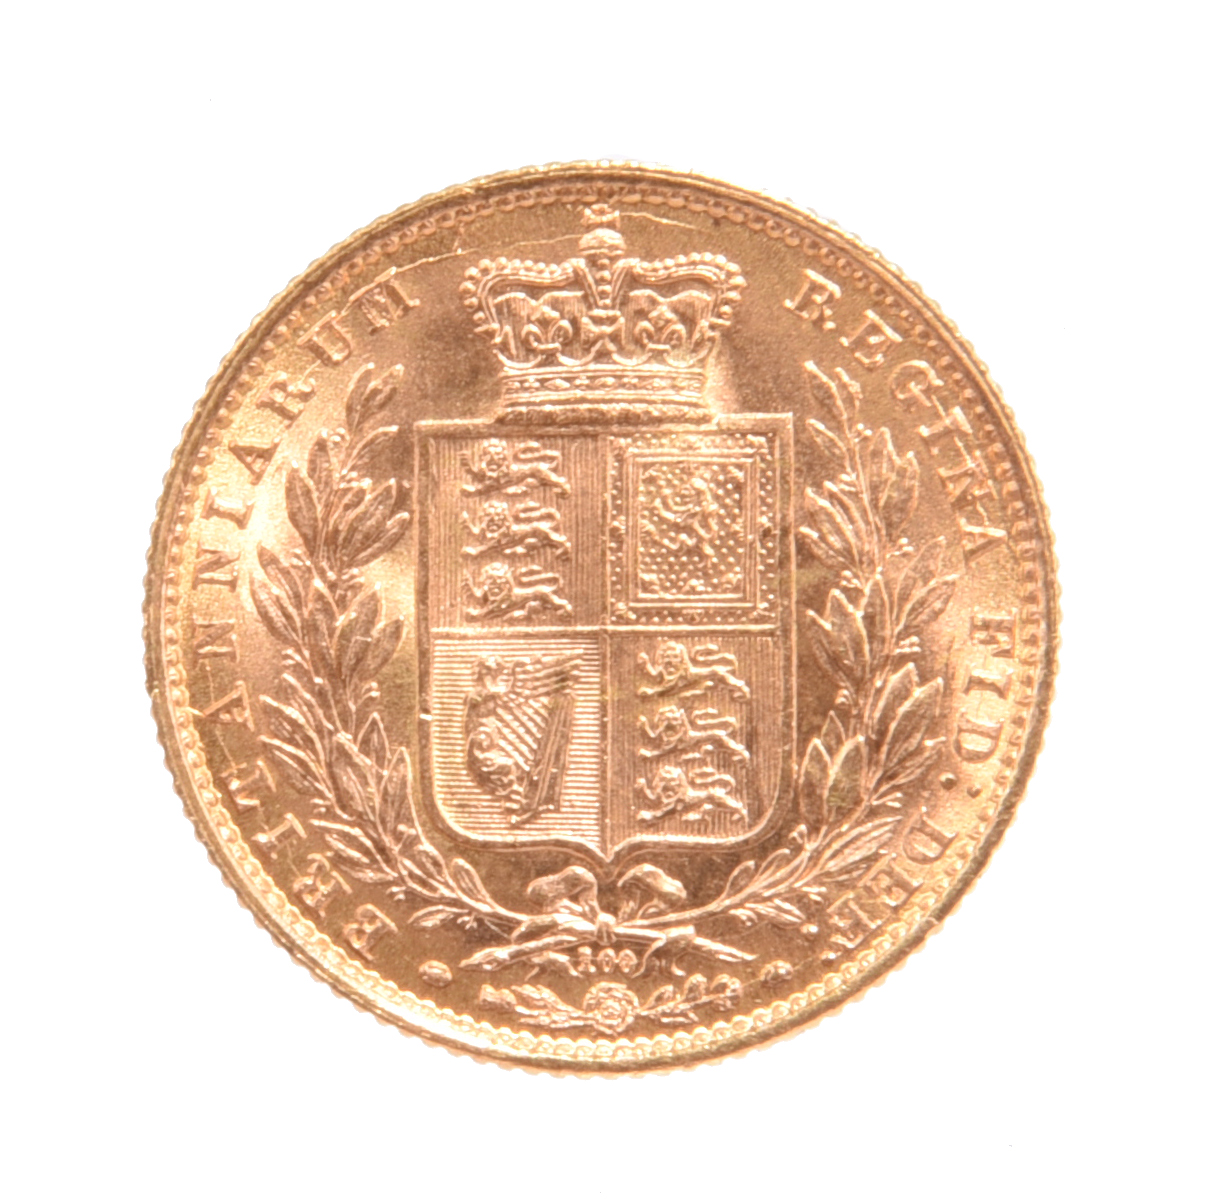 Victoria, gold sovereign, 1872, die number 100 (S3853B), die cracks, good extremely fine. - Image 2 of 2